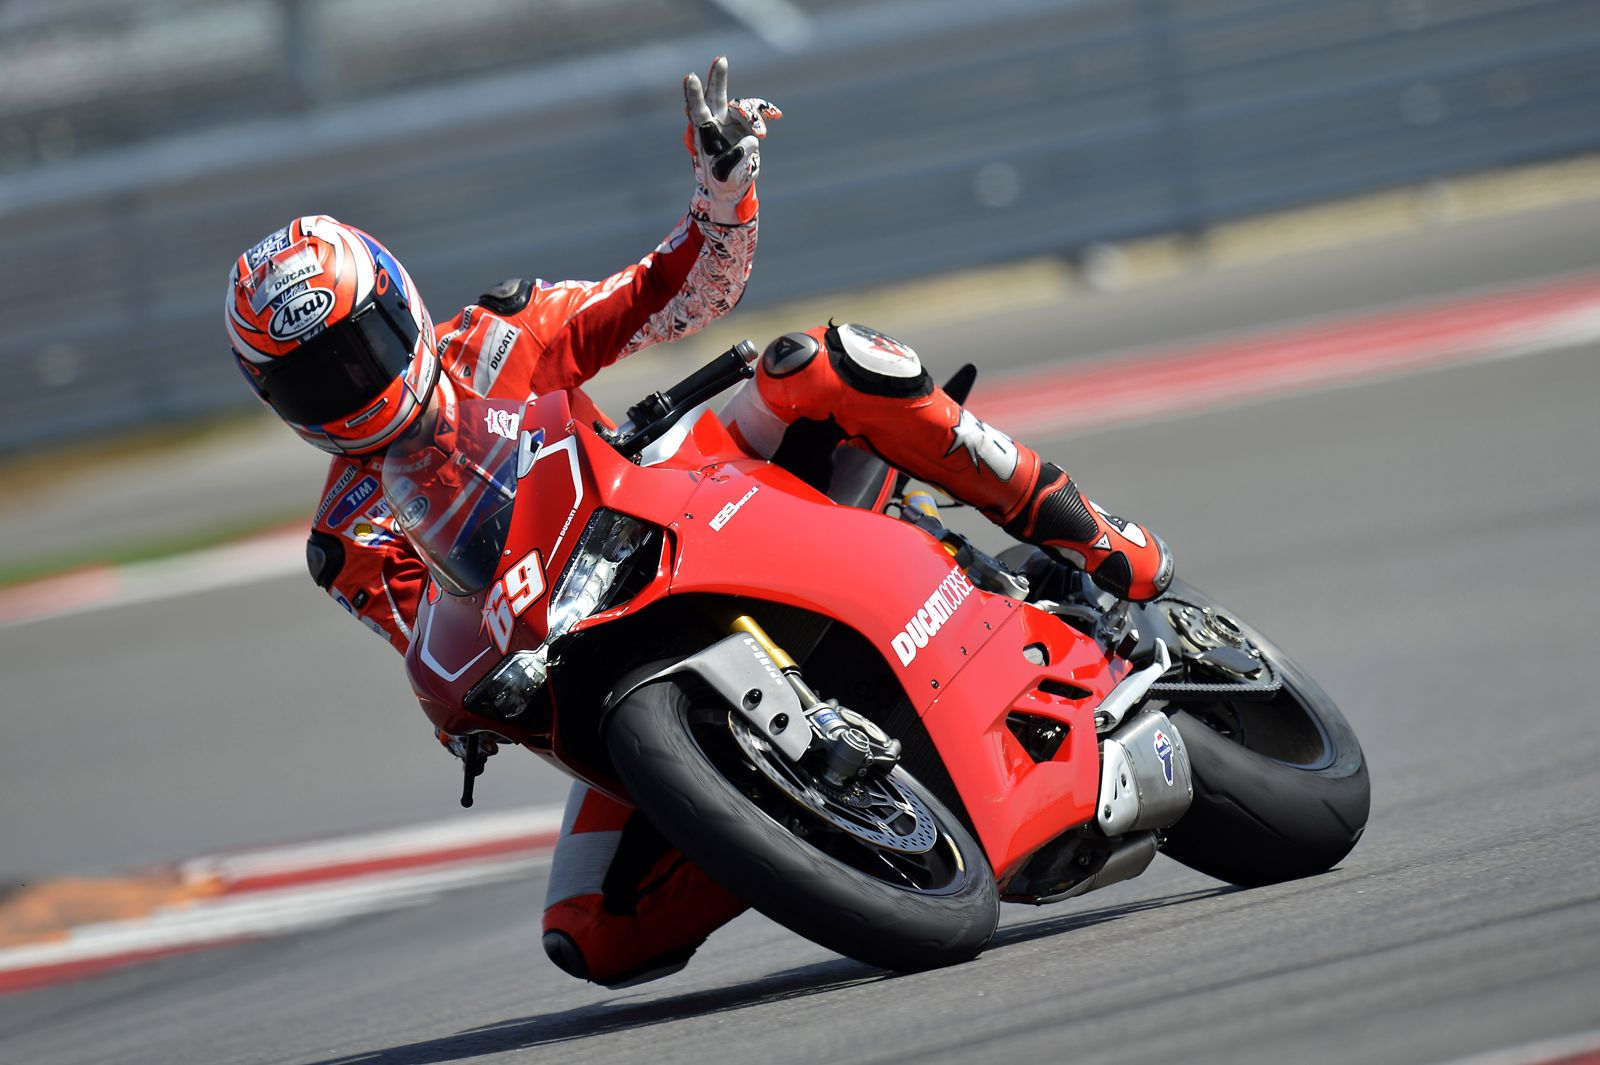 2013 Ducati 1199 Panigale R Official Pictures - autoevolution